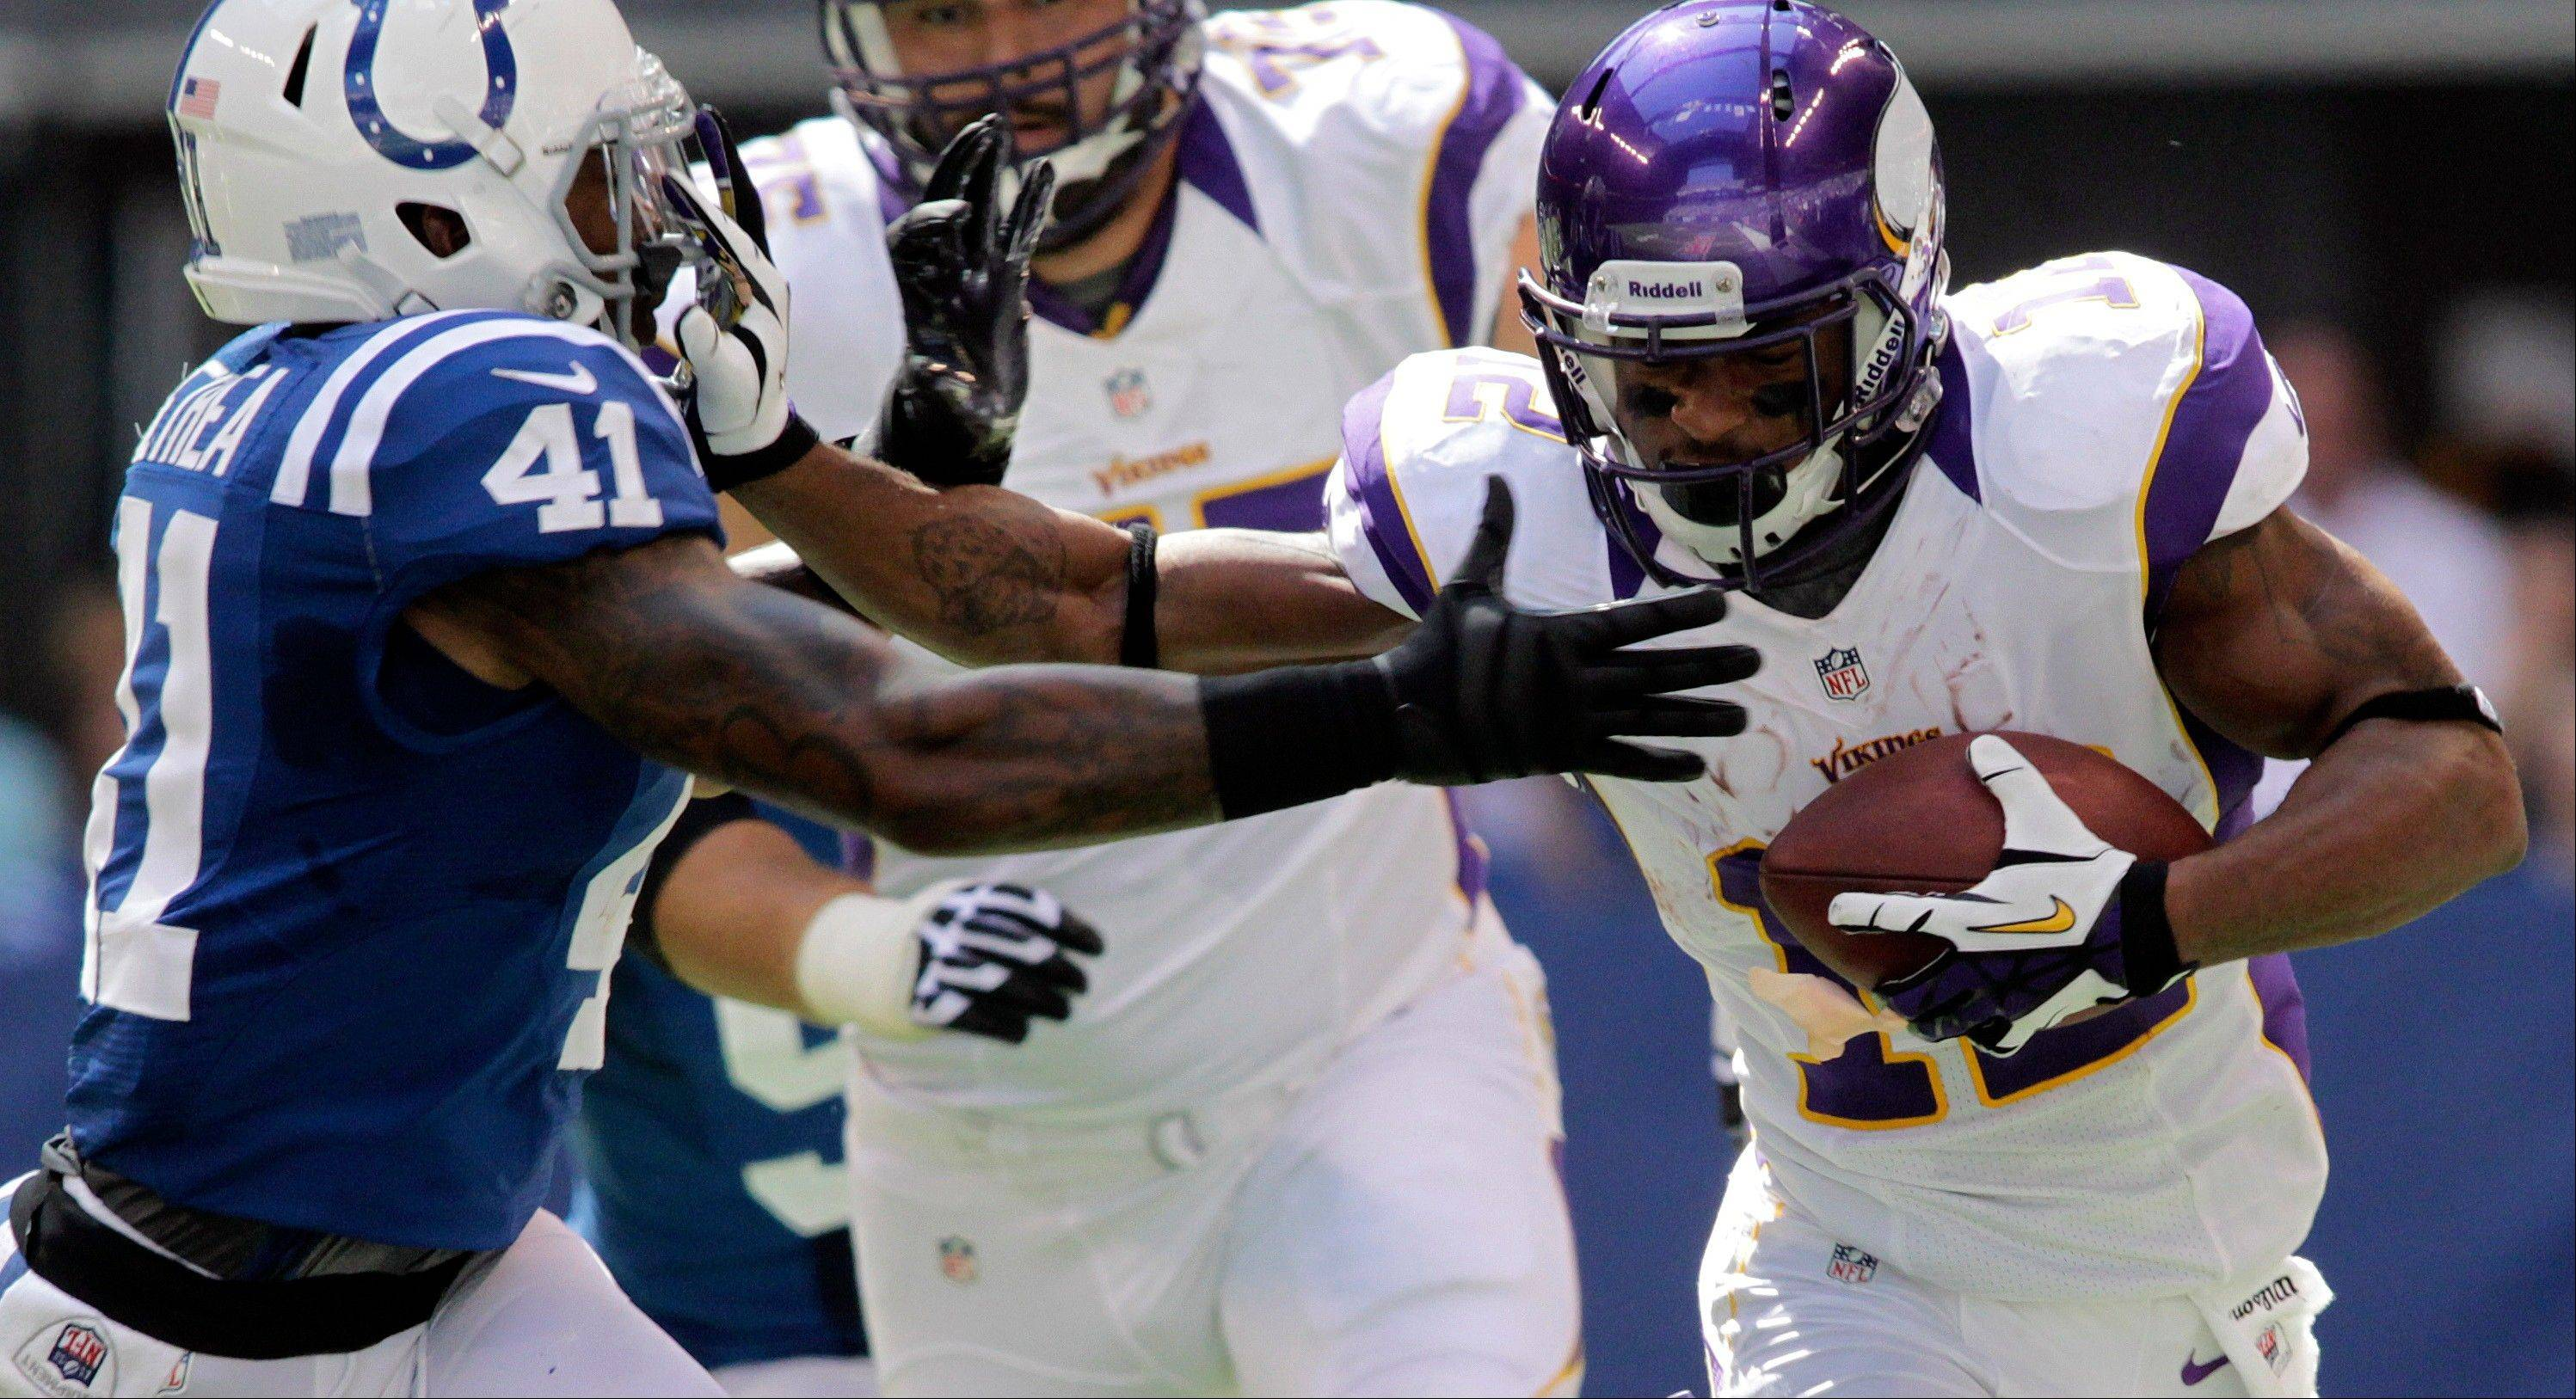 Minnesota Vikings wide receiver Percy Harvin, right, runs against the Indianapolis Colts� Antoine Bethea earlier this season. The Vikings will likely be without Harvin again this weekend because of his sprained left ankle.